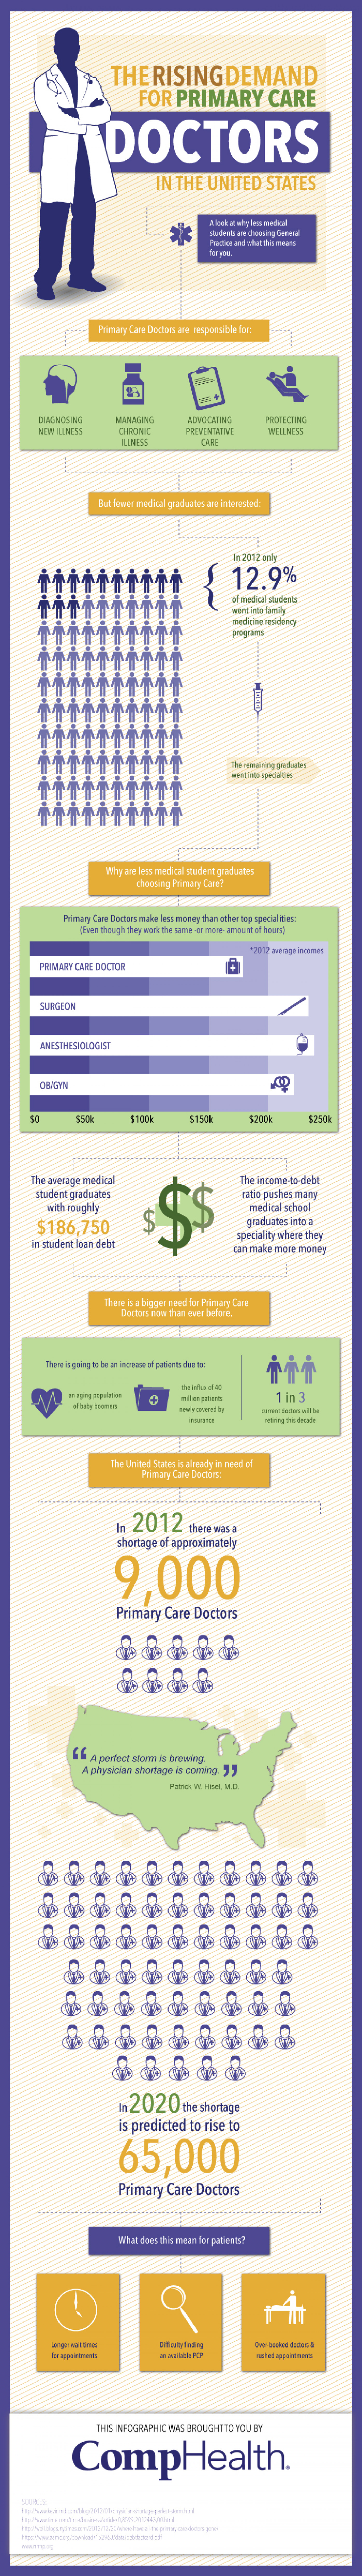 The rising demand for primary care doctors Infographic